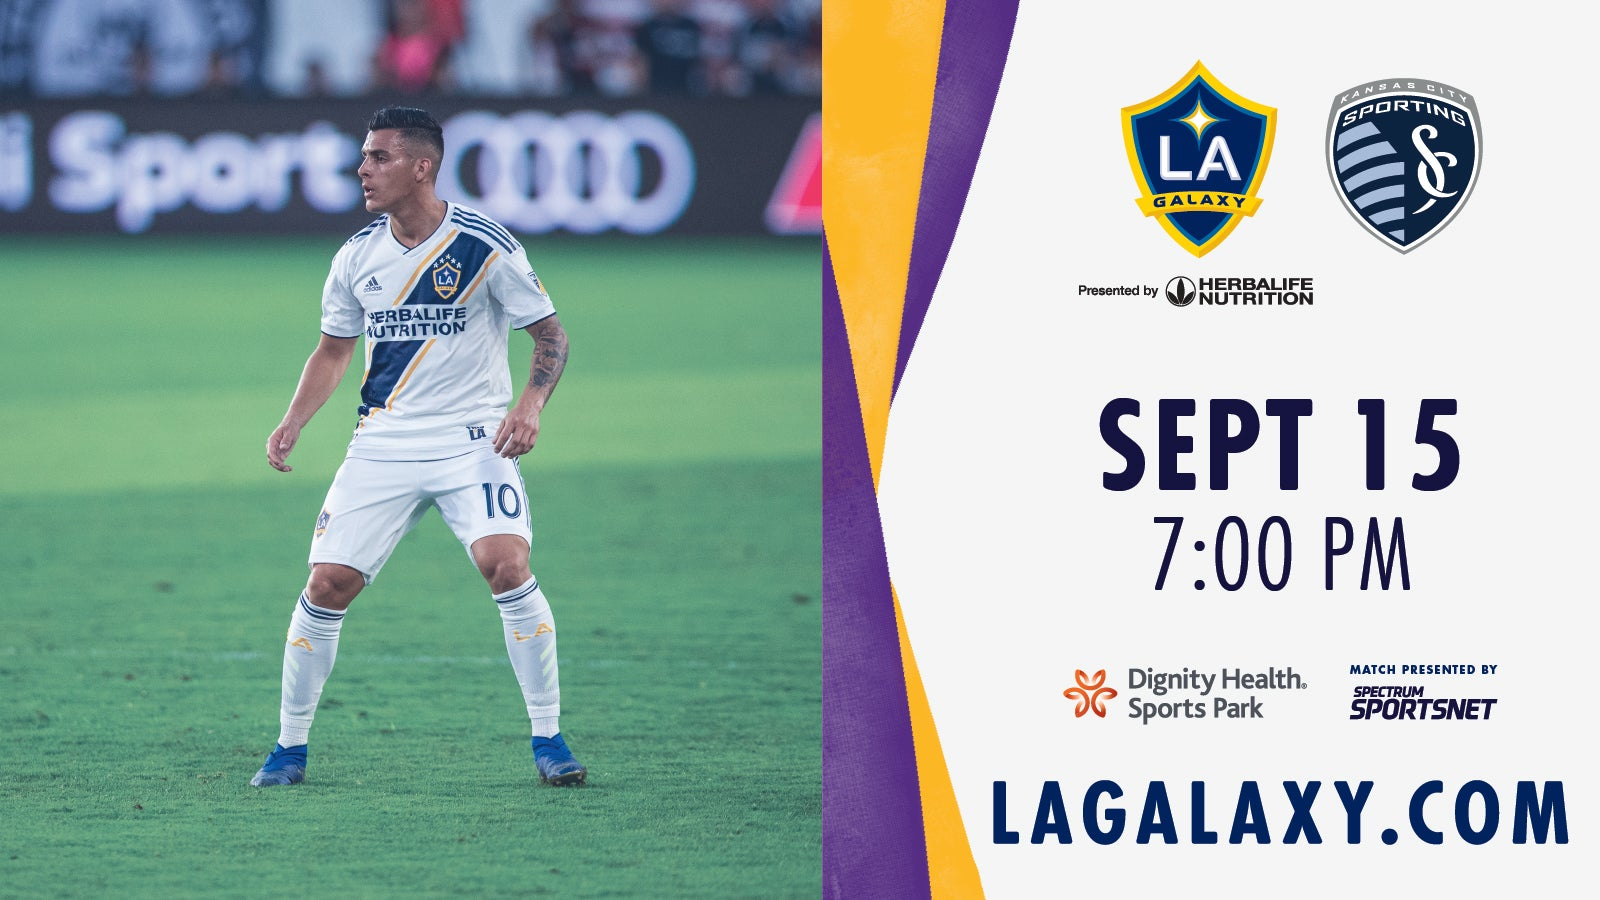 LA Galaxy vs. Sporting Kansas City